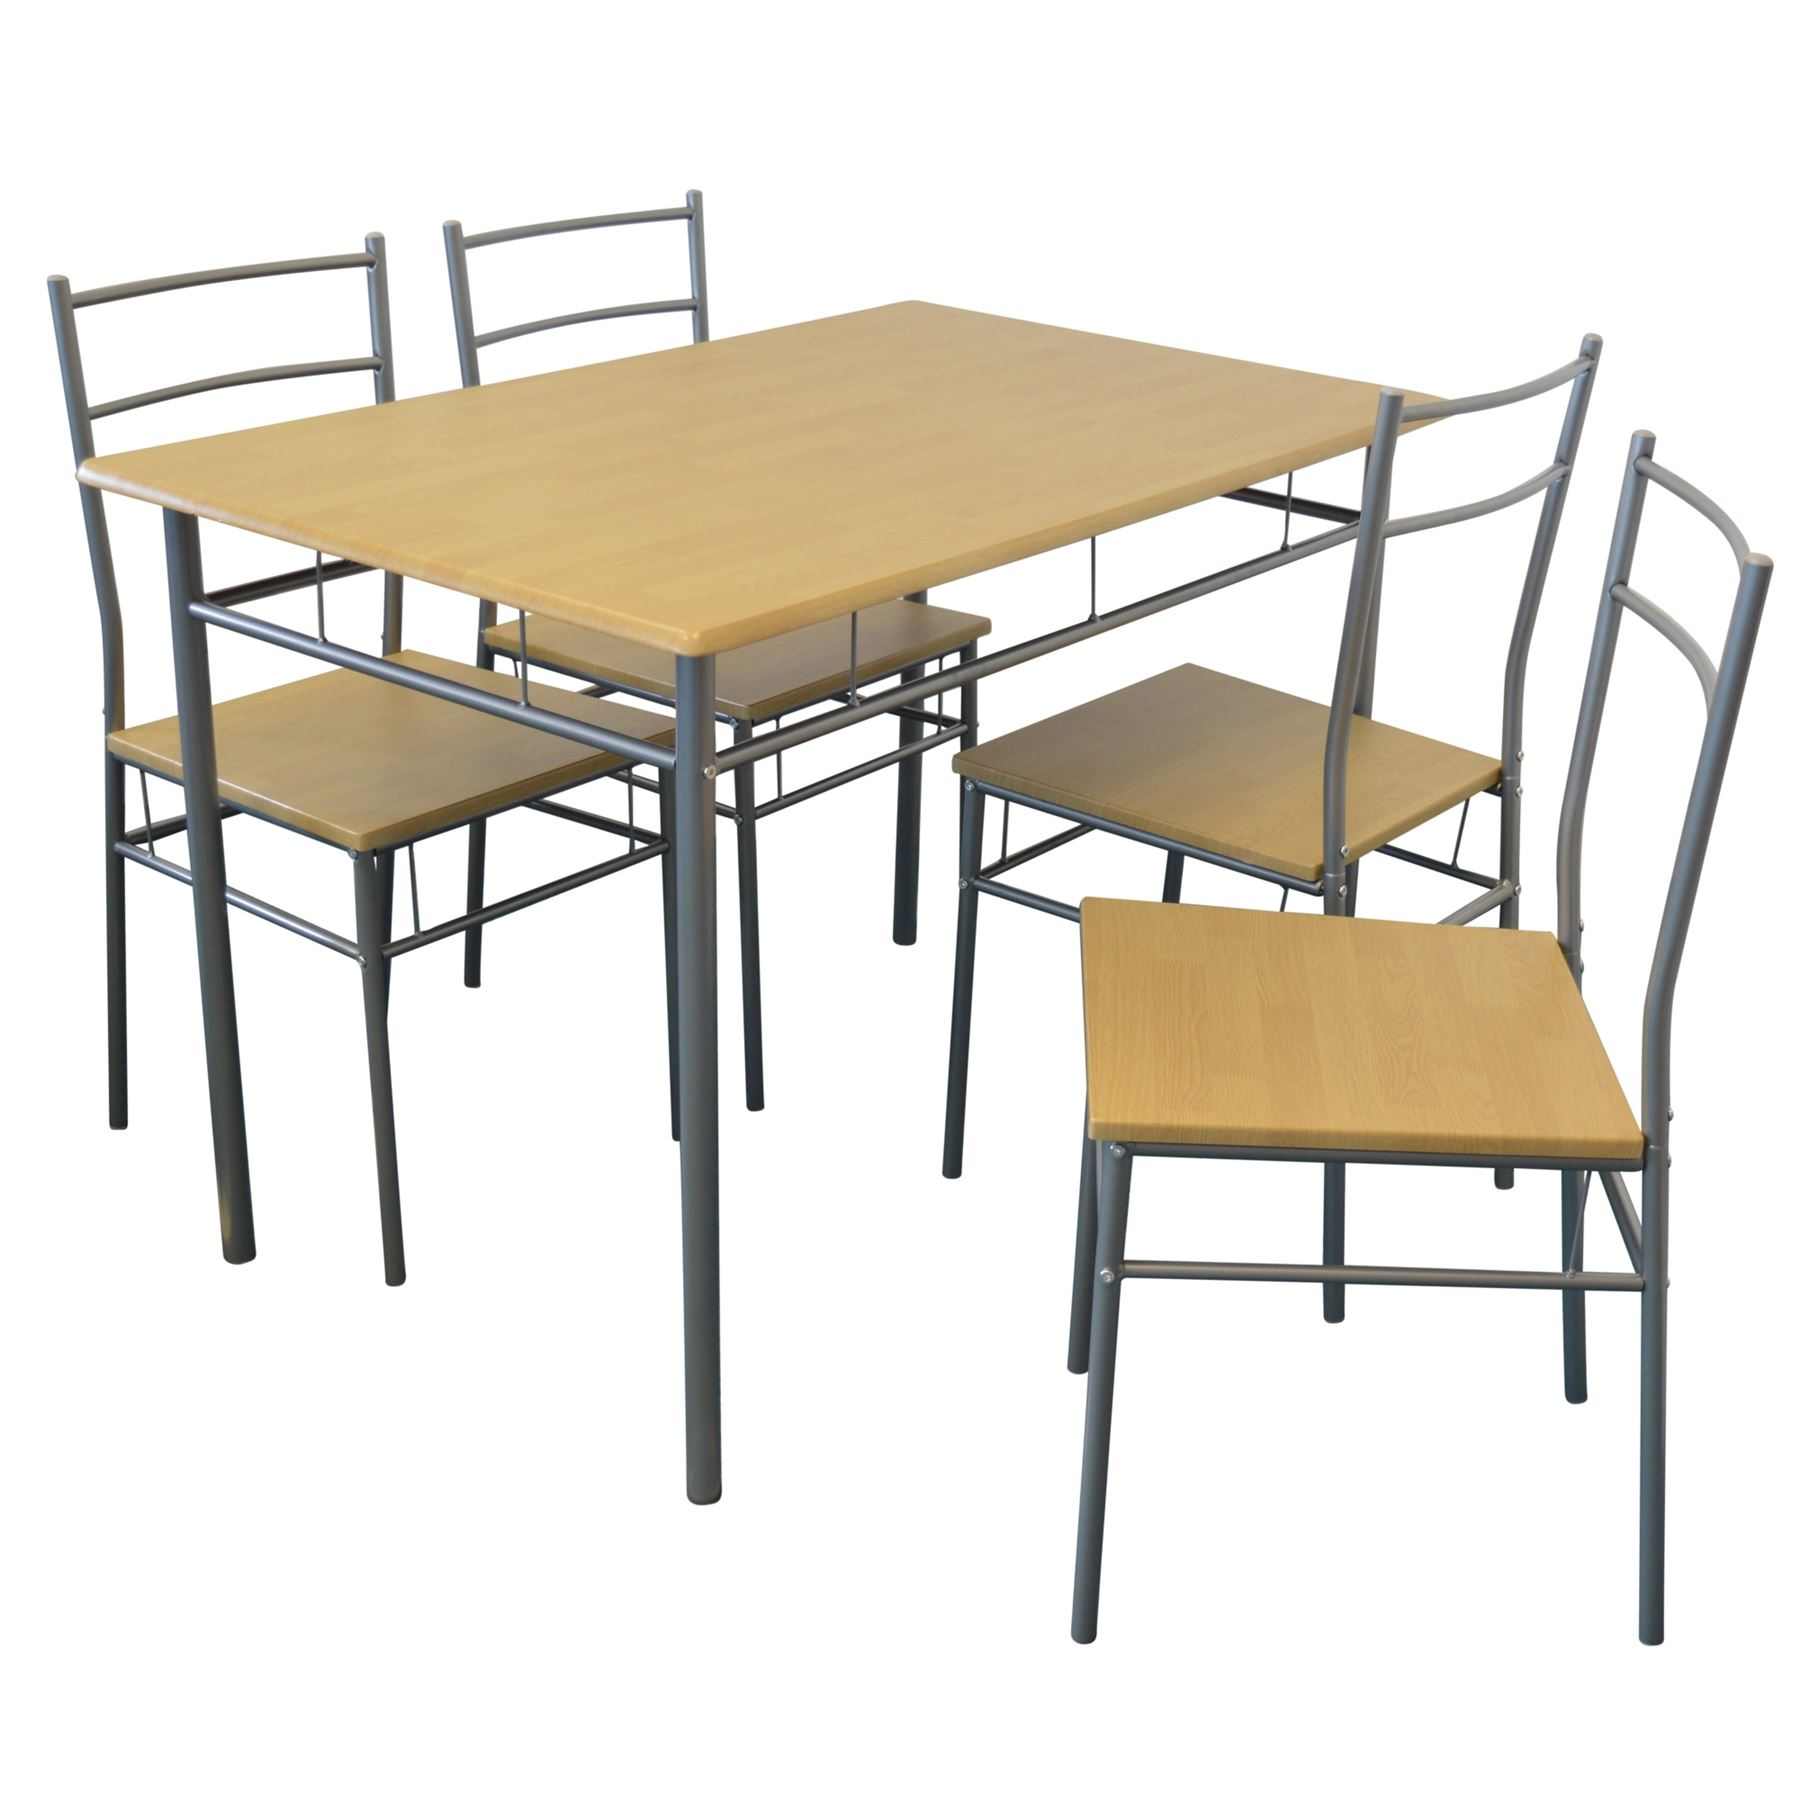 5 piece kitchen dining room table chairs furniture set silver ebay - Silver dining table and chairs ...